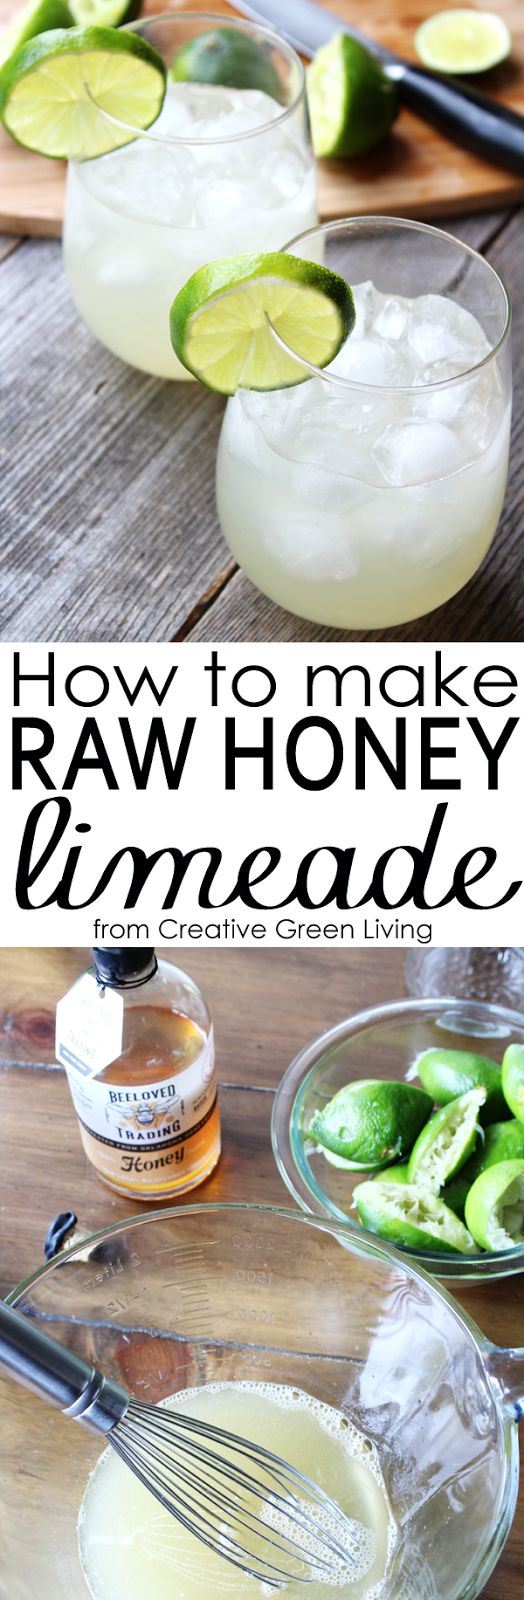 I love this homemade fresh limeade recipe made with healthy raw honey instead of refined sugar. You could dress it up with mint or sparkling water to make a fancier limeade drink, too!